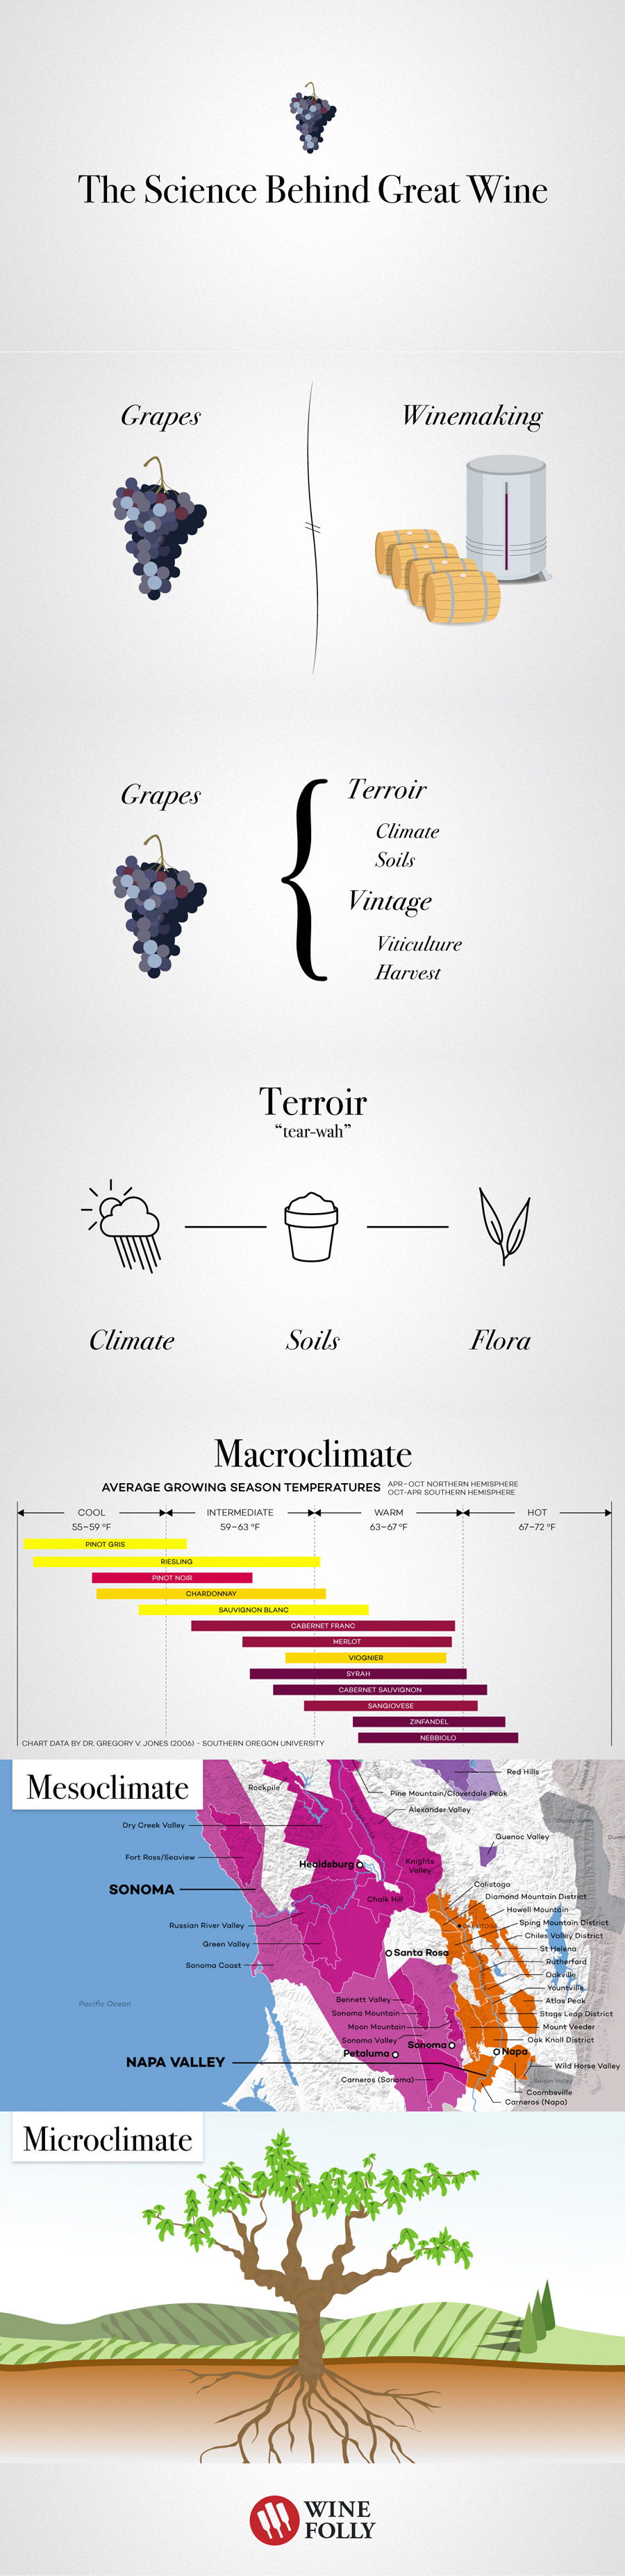 The Science Behind Great Wine - Part 1 by Wine Folly